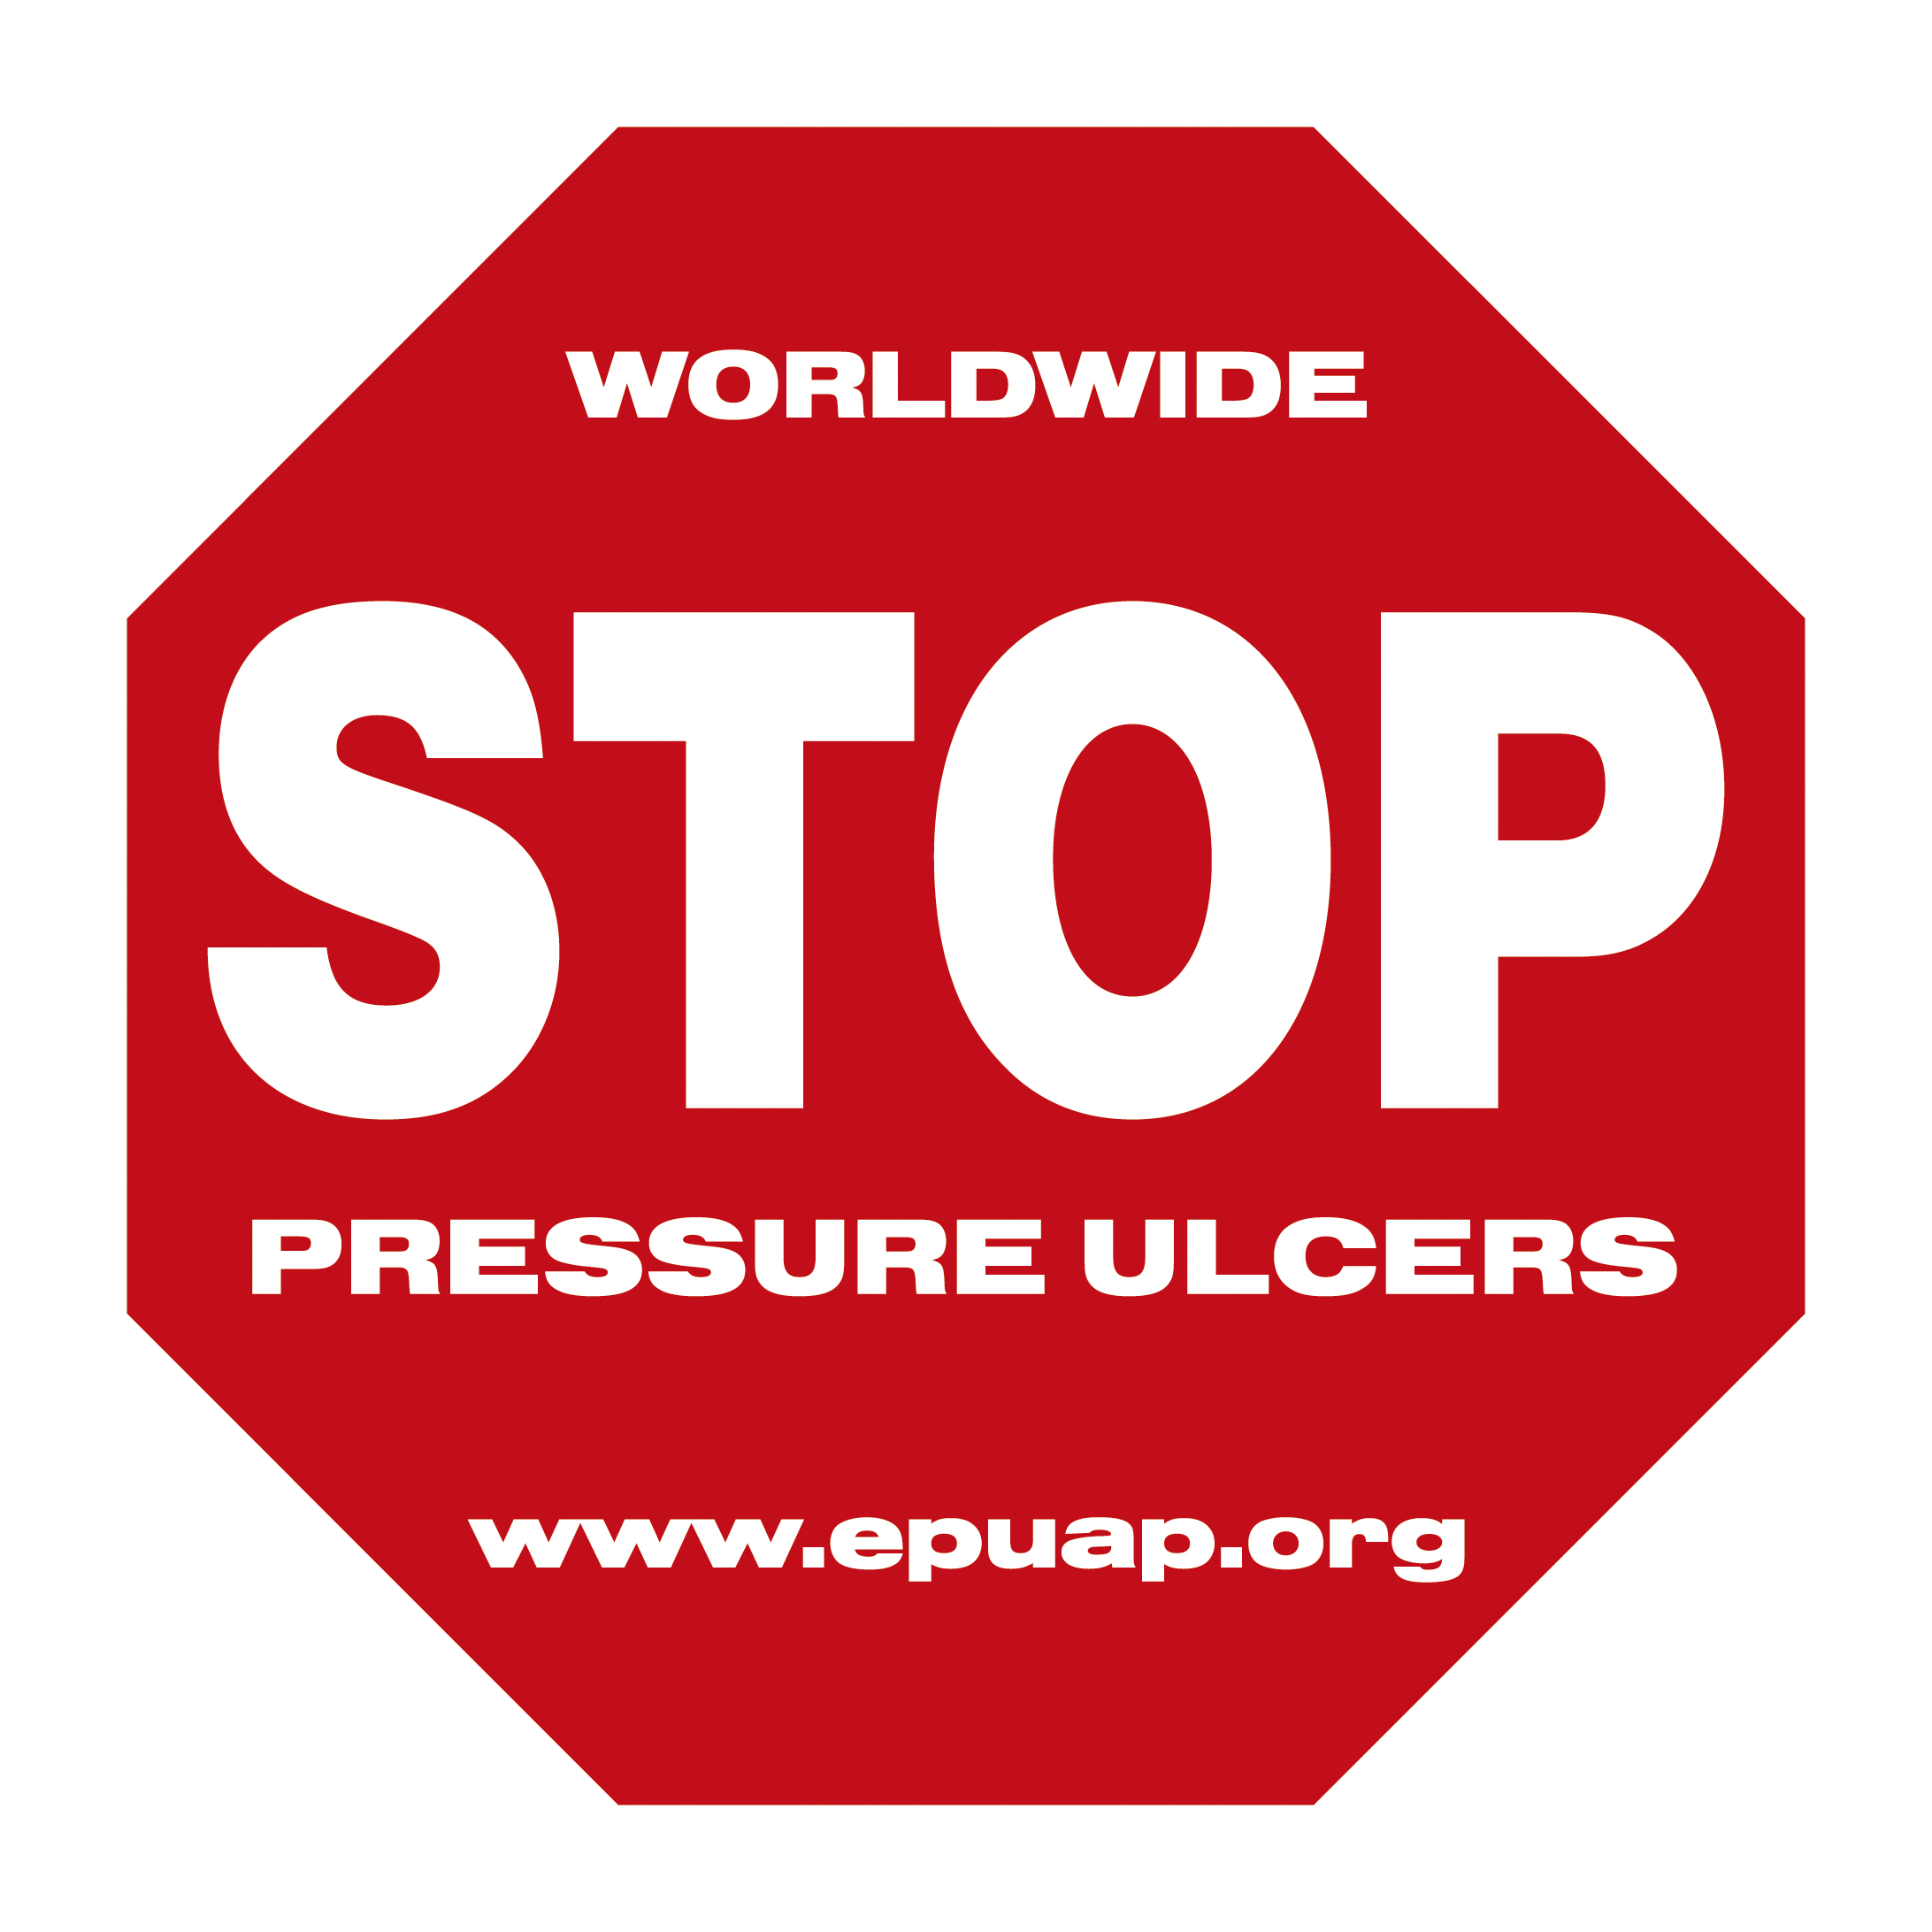 prevention and treatment of pressure ulcers Prevention and treatment of pressure ulcers: clinical practice guideline is the result of a collaborative effort among the: national pressure ulcer advisory panel (npuap) , european pressure ulcer advisory panel (epuap) , and the.